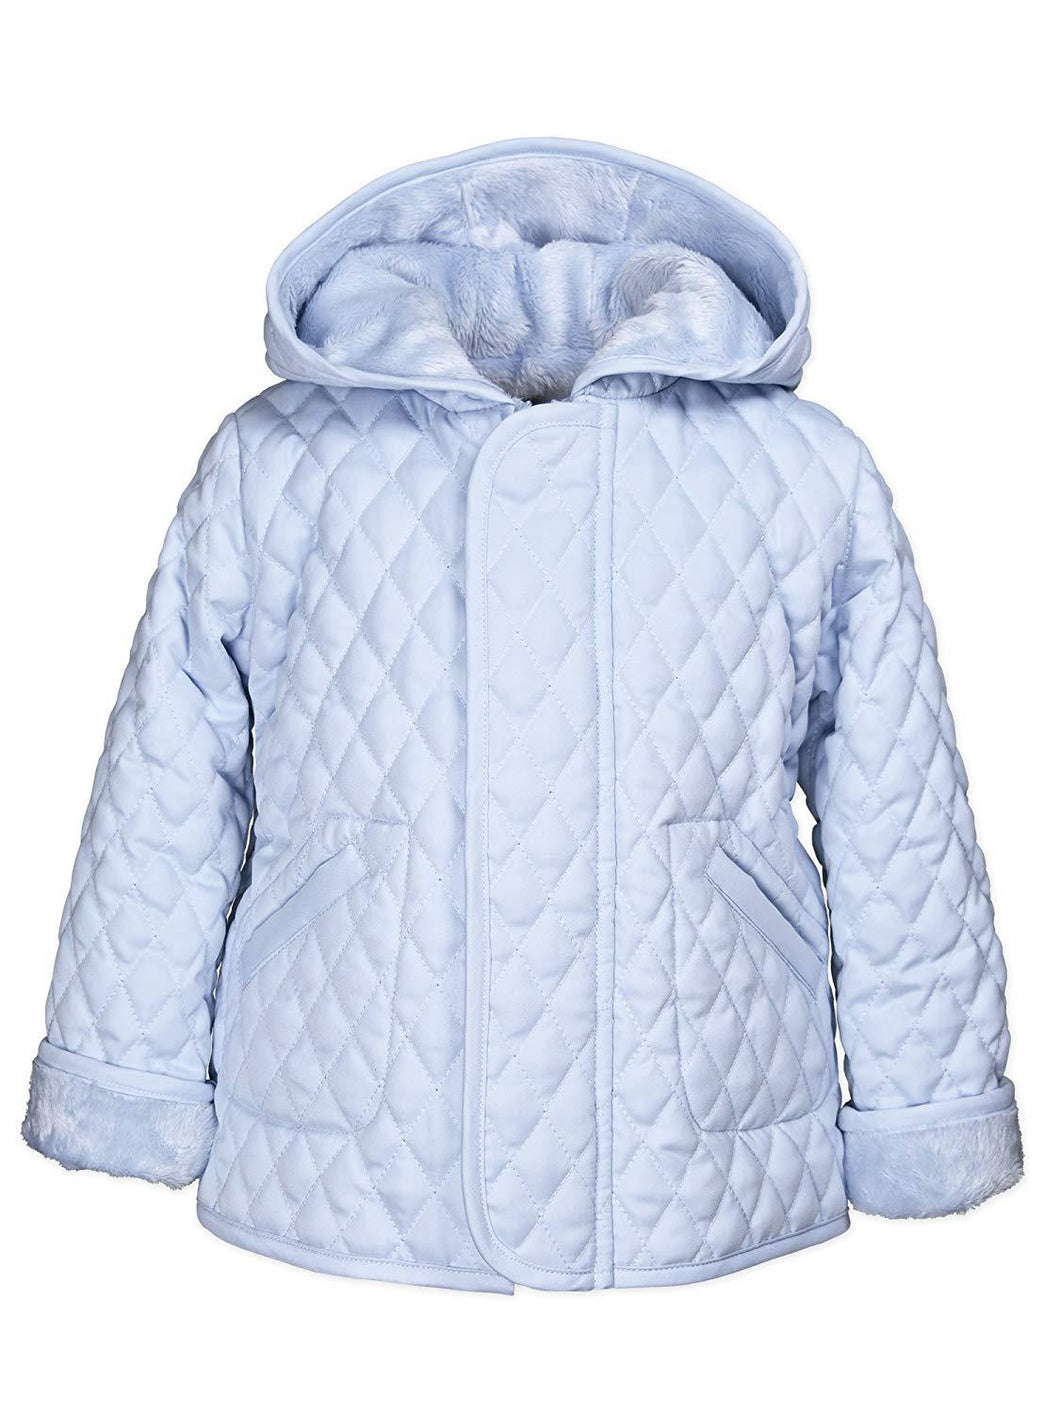 Blue Hooded Barn Jacket - Toddler Boys